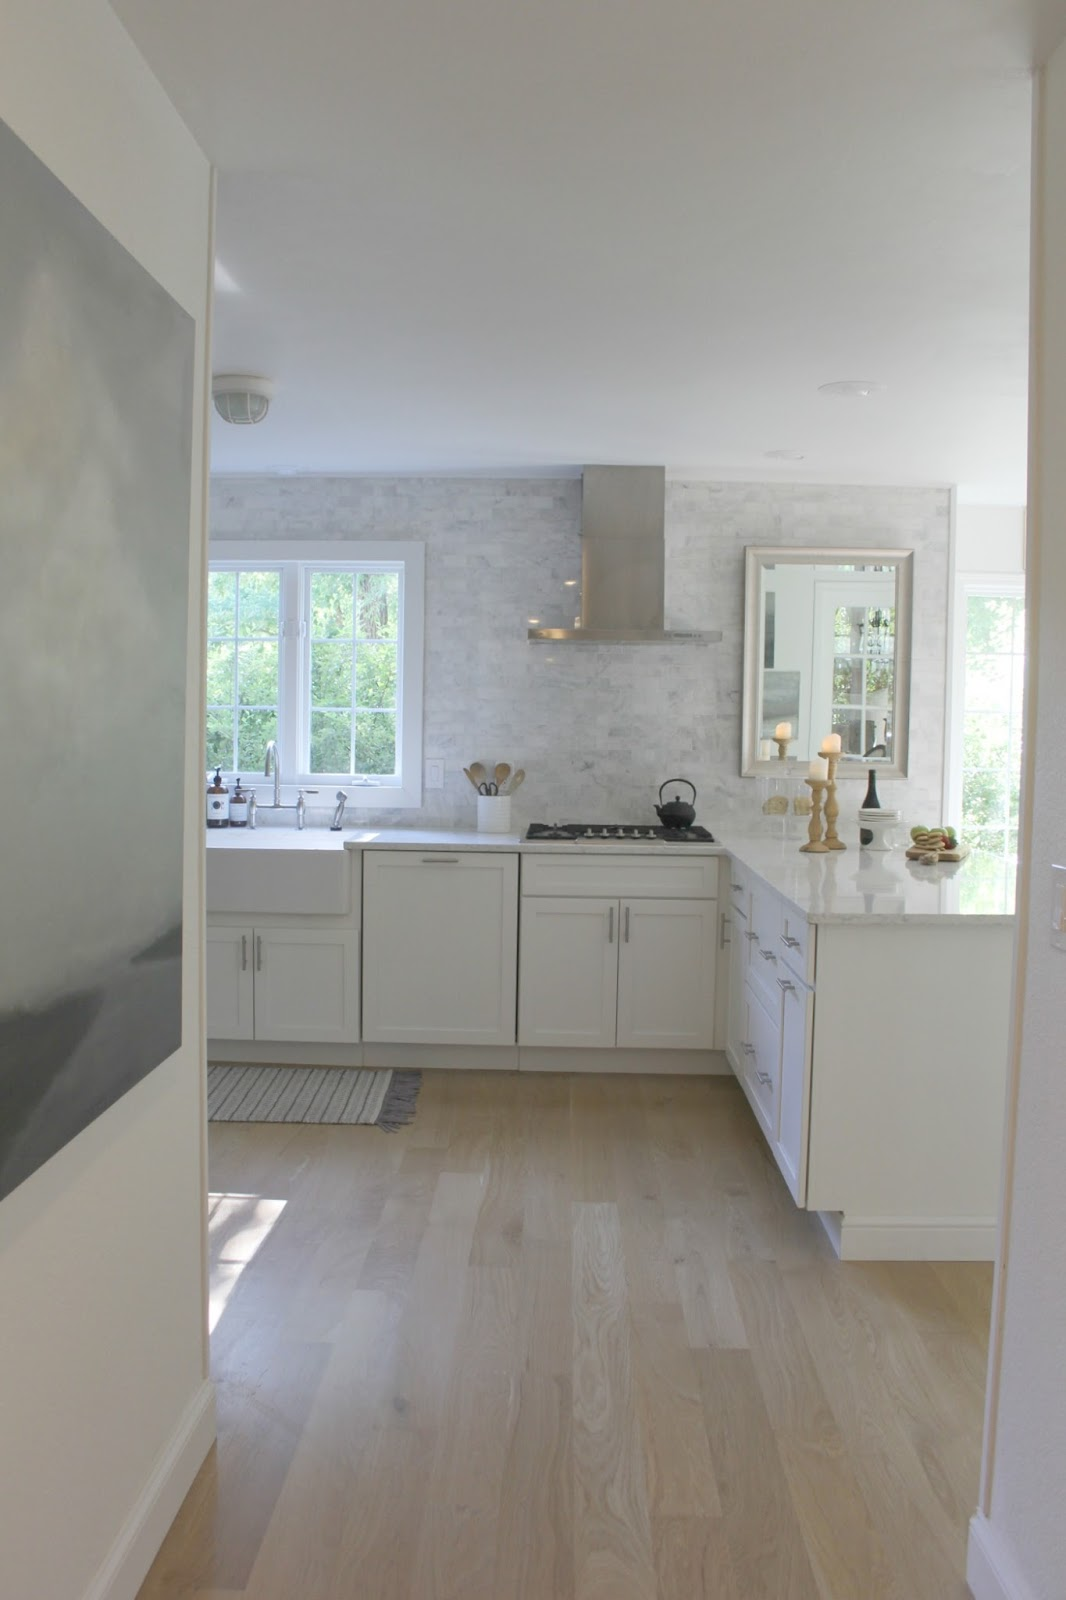 Serene white kitchen with white oak hardwood flooring. Shaker kitchen cabinets, Viatera quartz countertop (Minuet). Carrara subway tile taken to the ceiling. Modern range hood. Wall color is Benjamin Moore WHITE. #hellolovelystudio #whitekitchen #serene #whiteoak #benjaminmoorewhite #viateraquartz #minuet